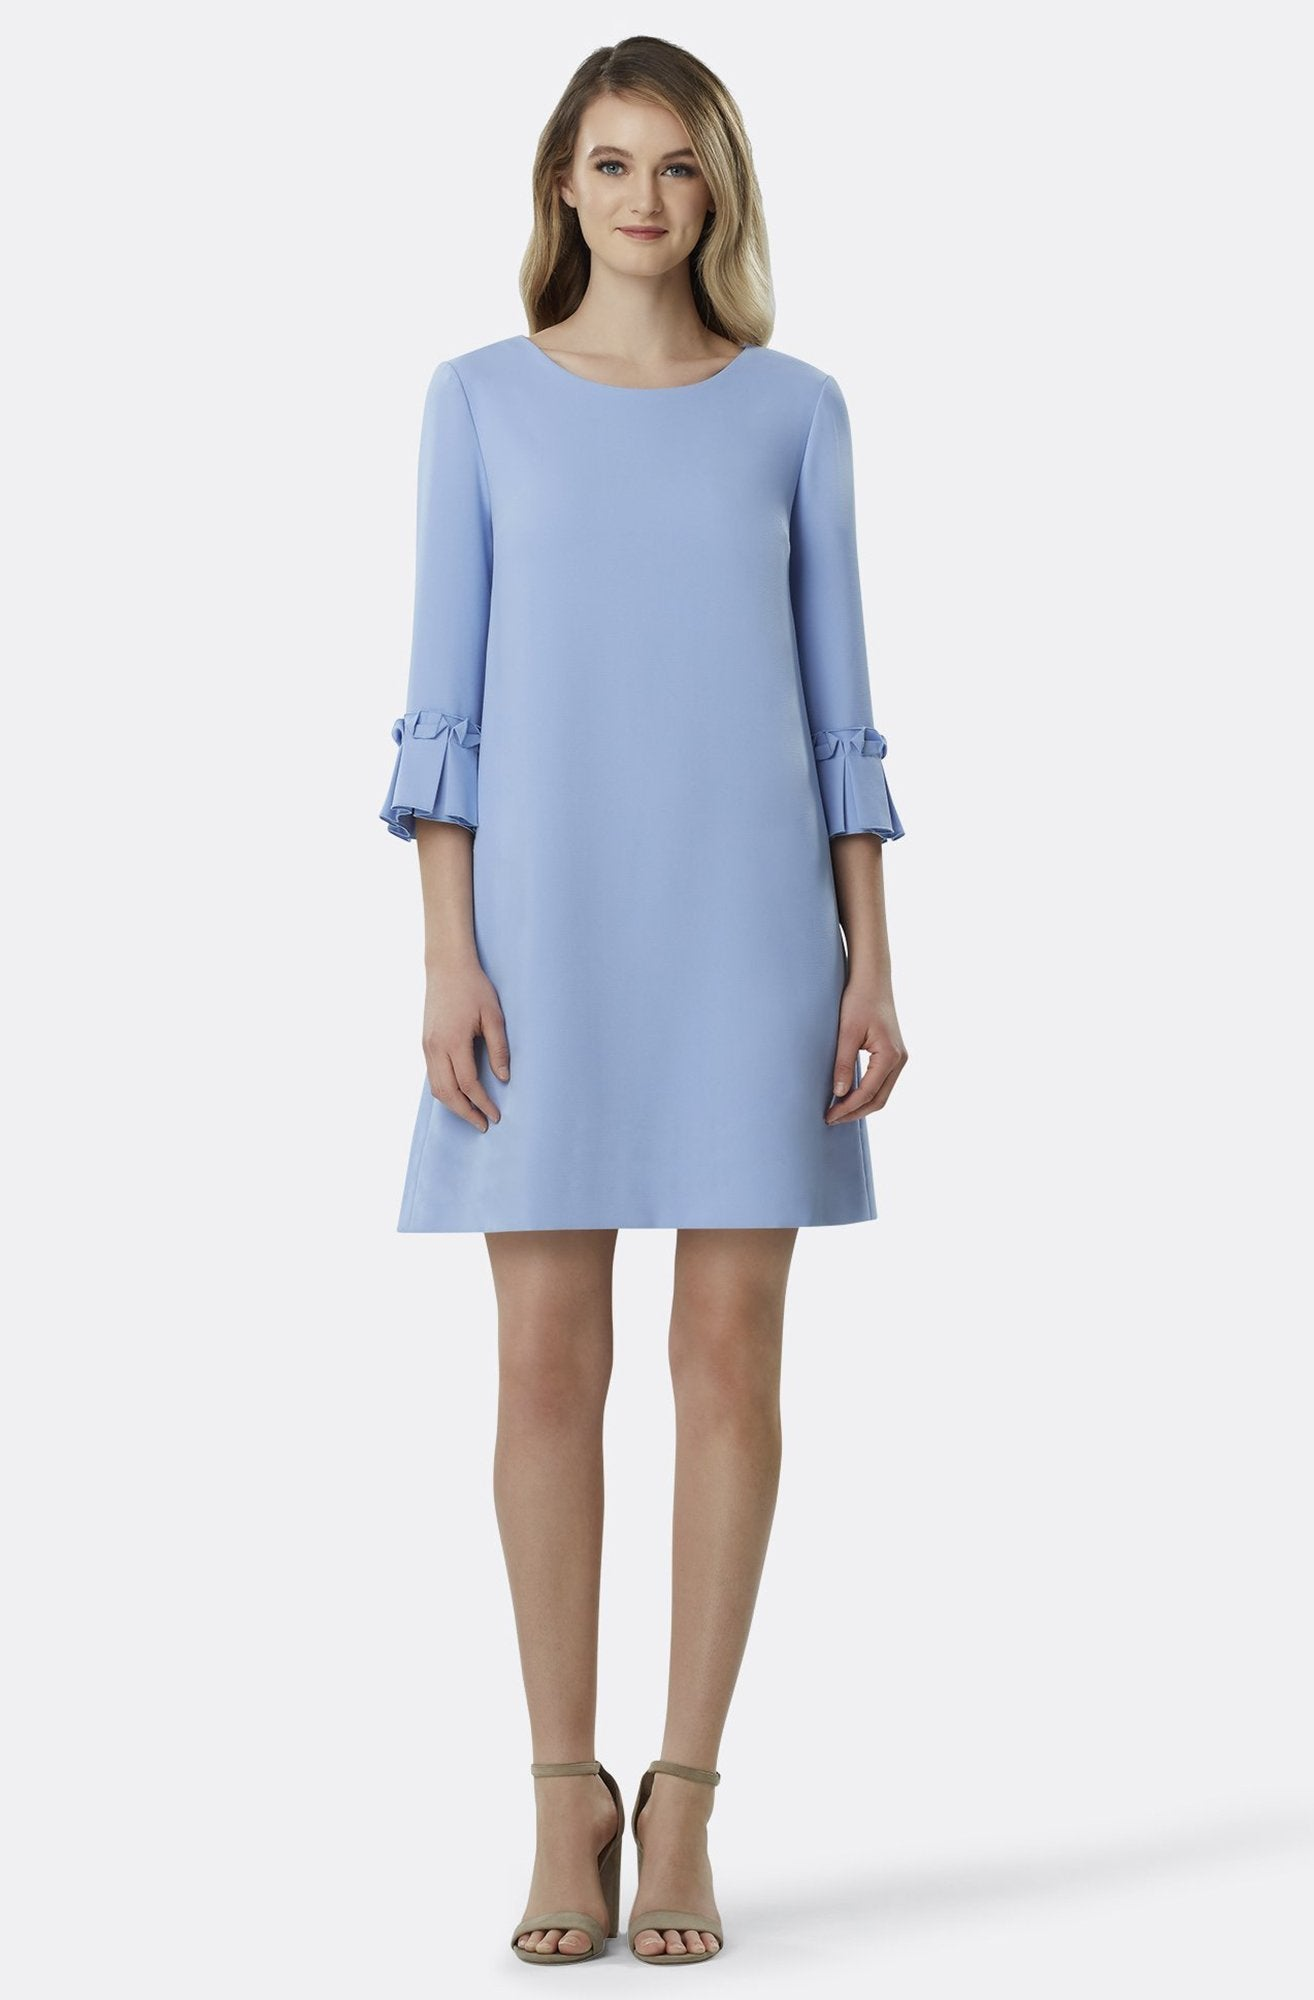 Tahari Asl - TLMU9WD682 Origami Detailed Scoop A-line Dress In Blue